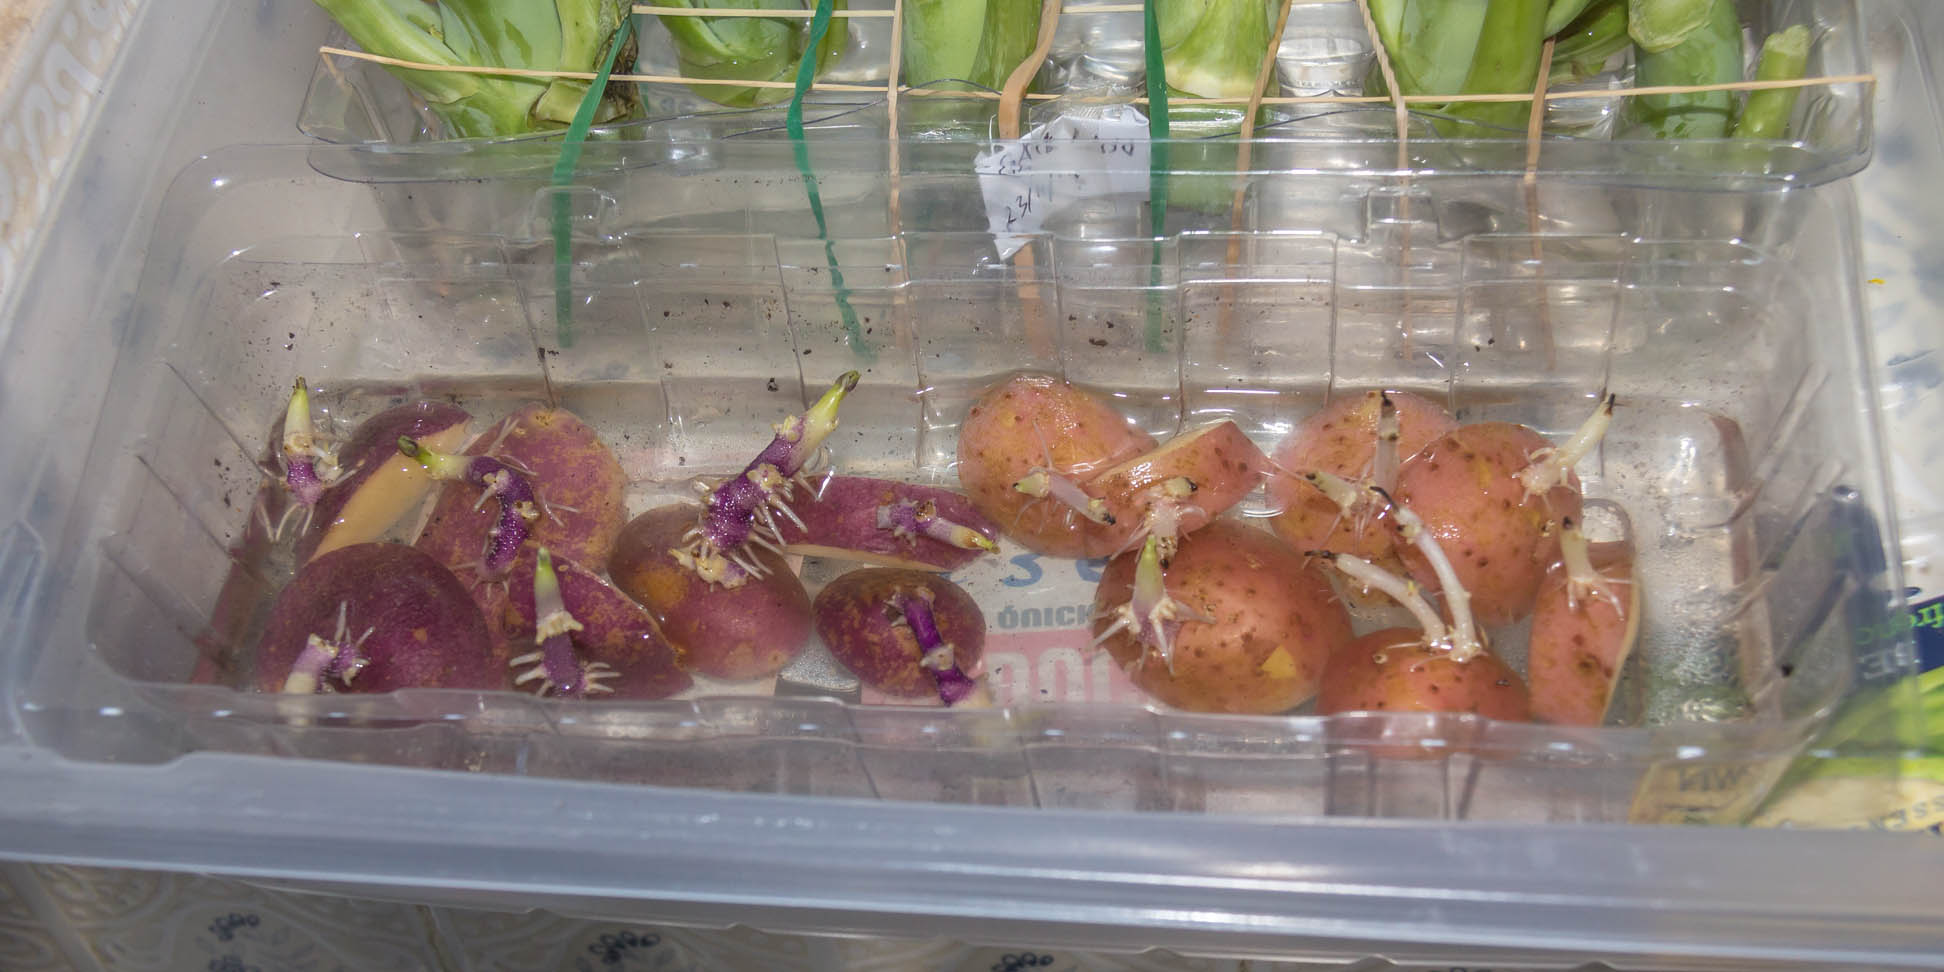 Re-use plastic container with water and potato eyes and roots are forming